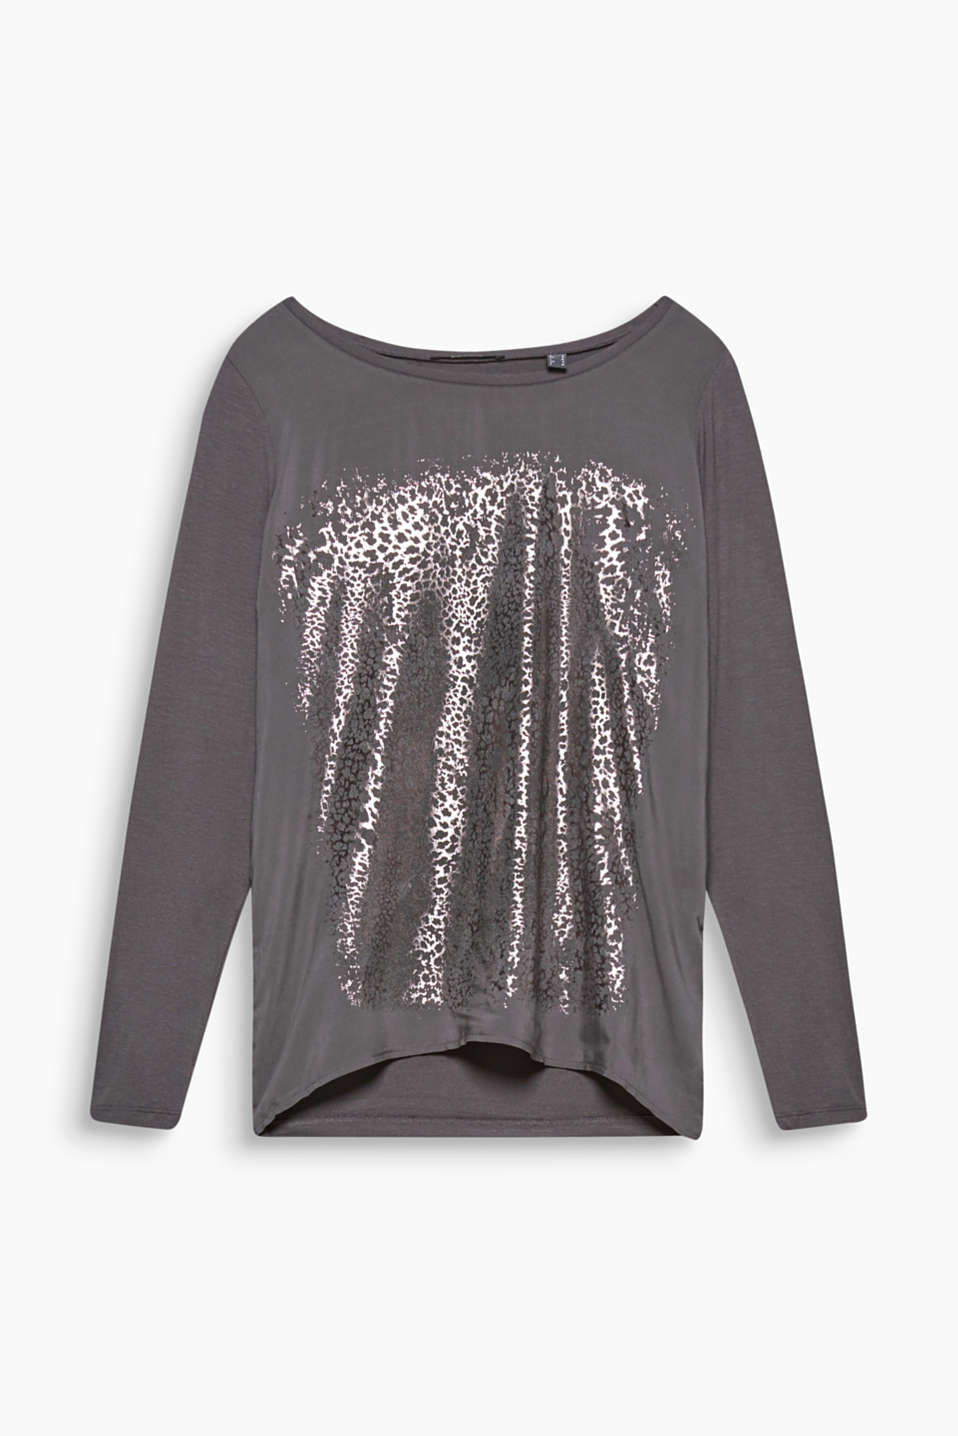 This mix material long sleeve top with a shiny front print feels soft to the touch and looks elegant.